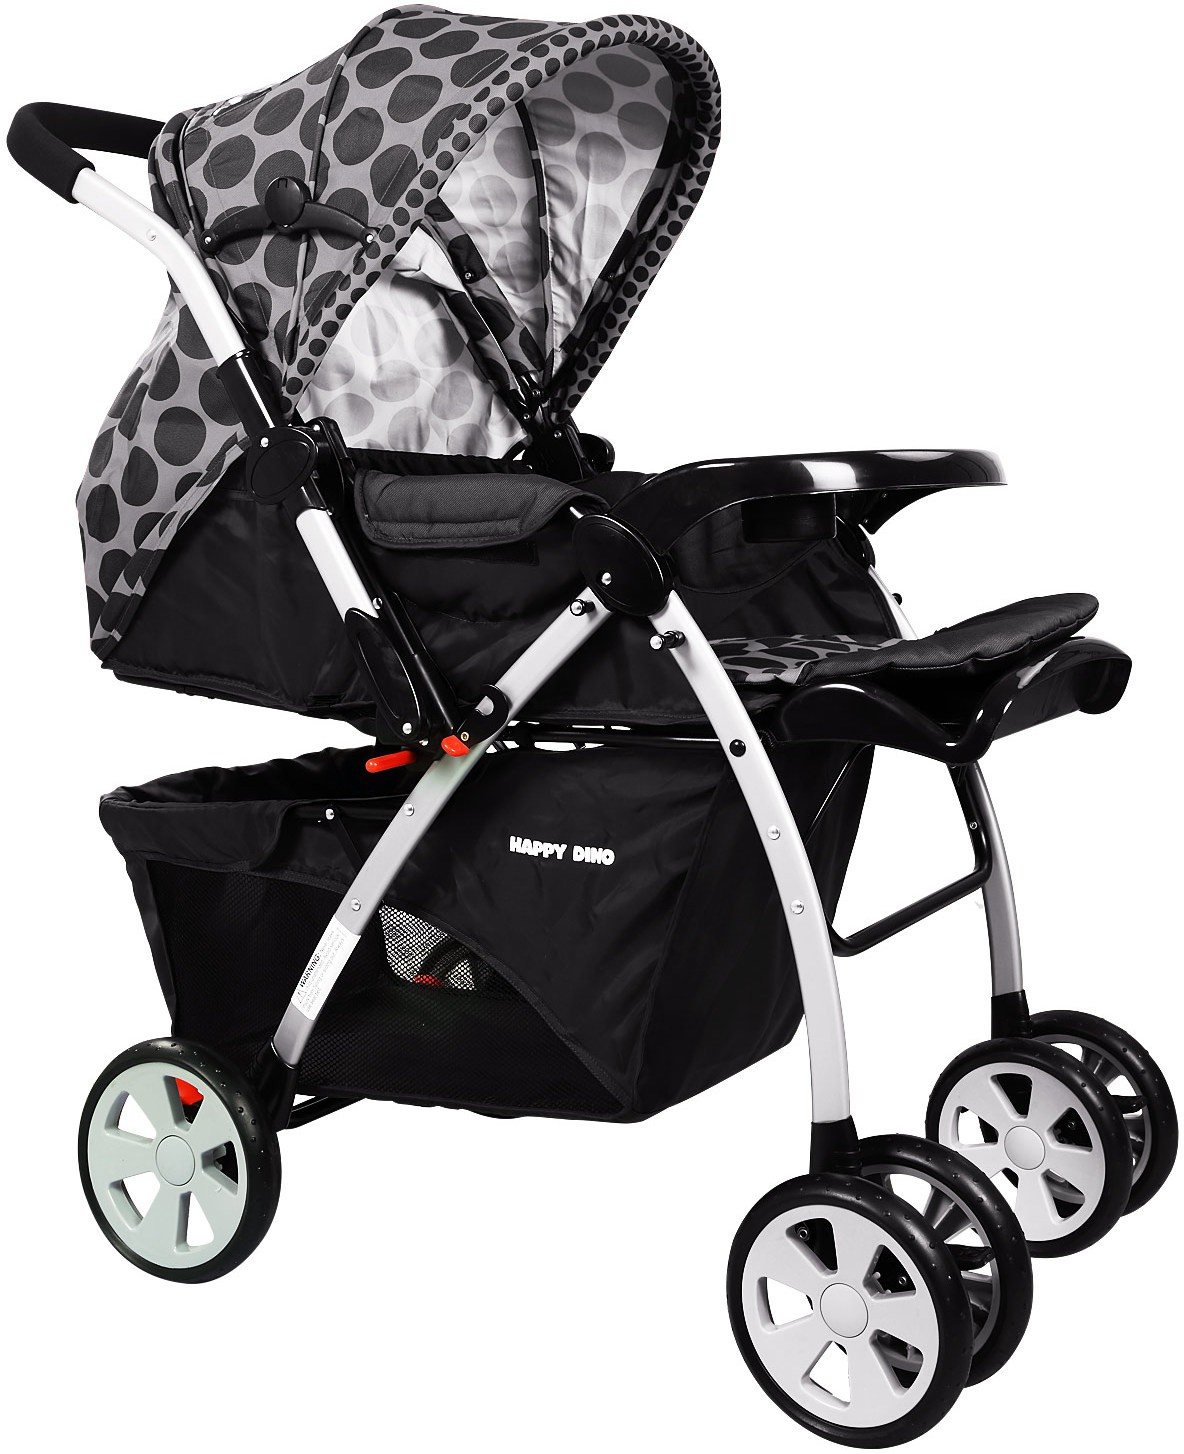 Pram Stroller India Happy Dino 8903869188983 Stroller Best Price In India